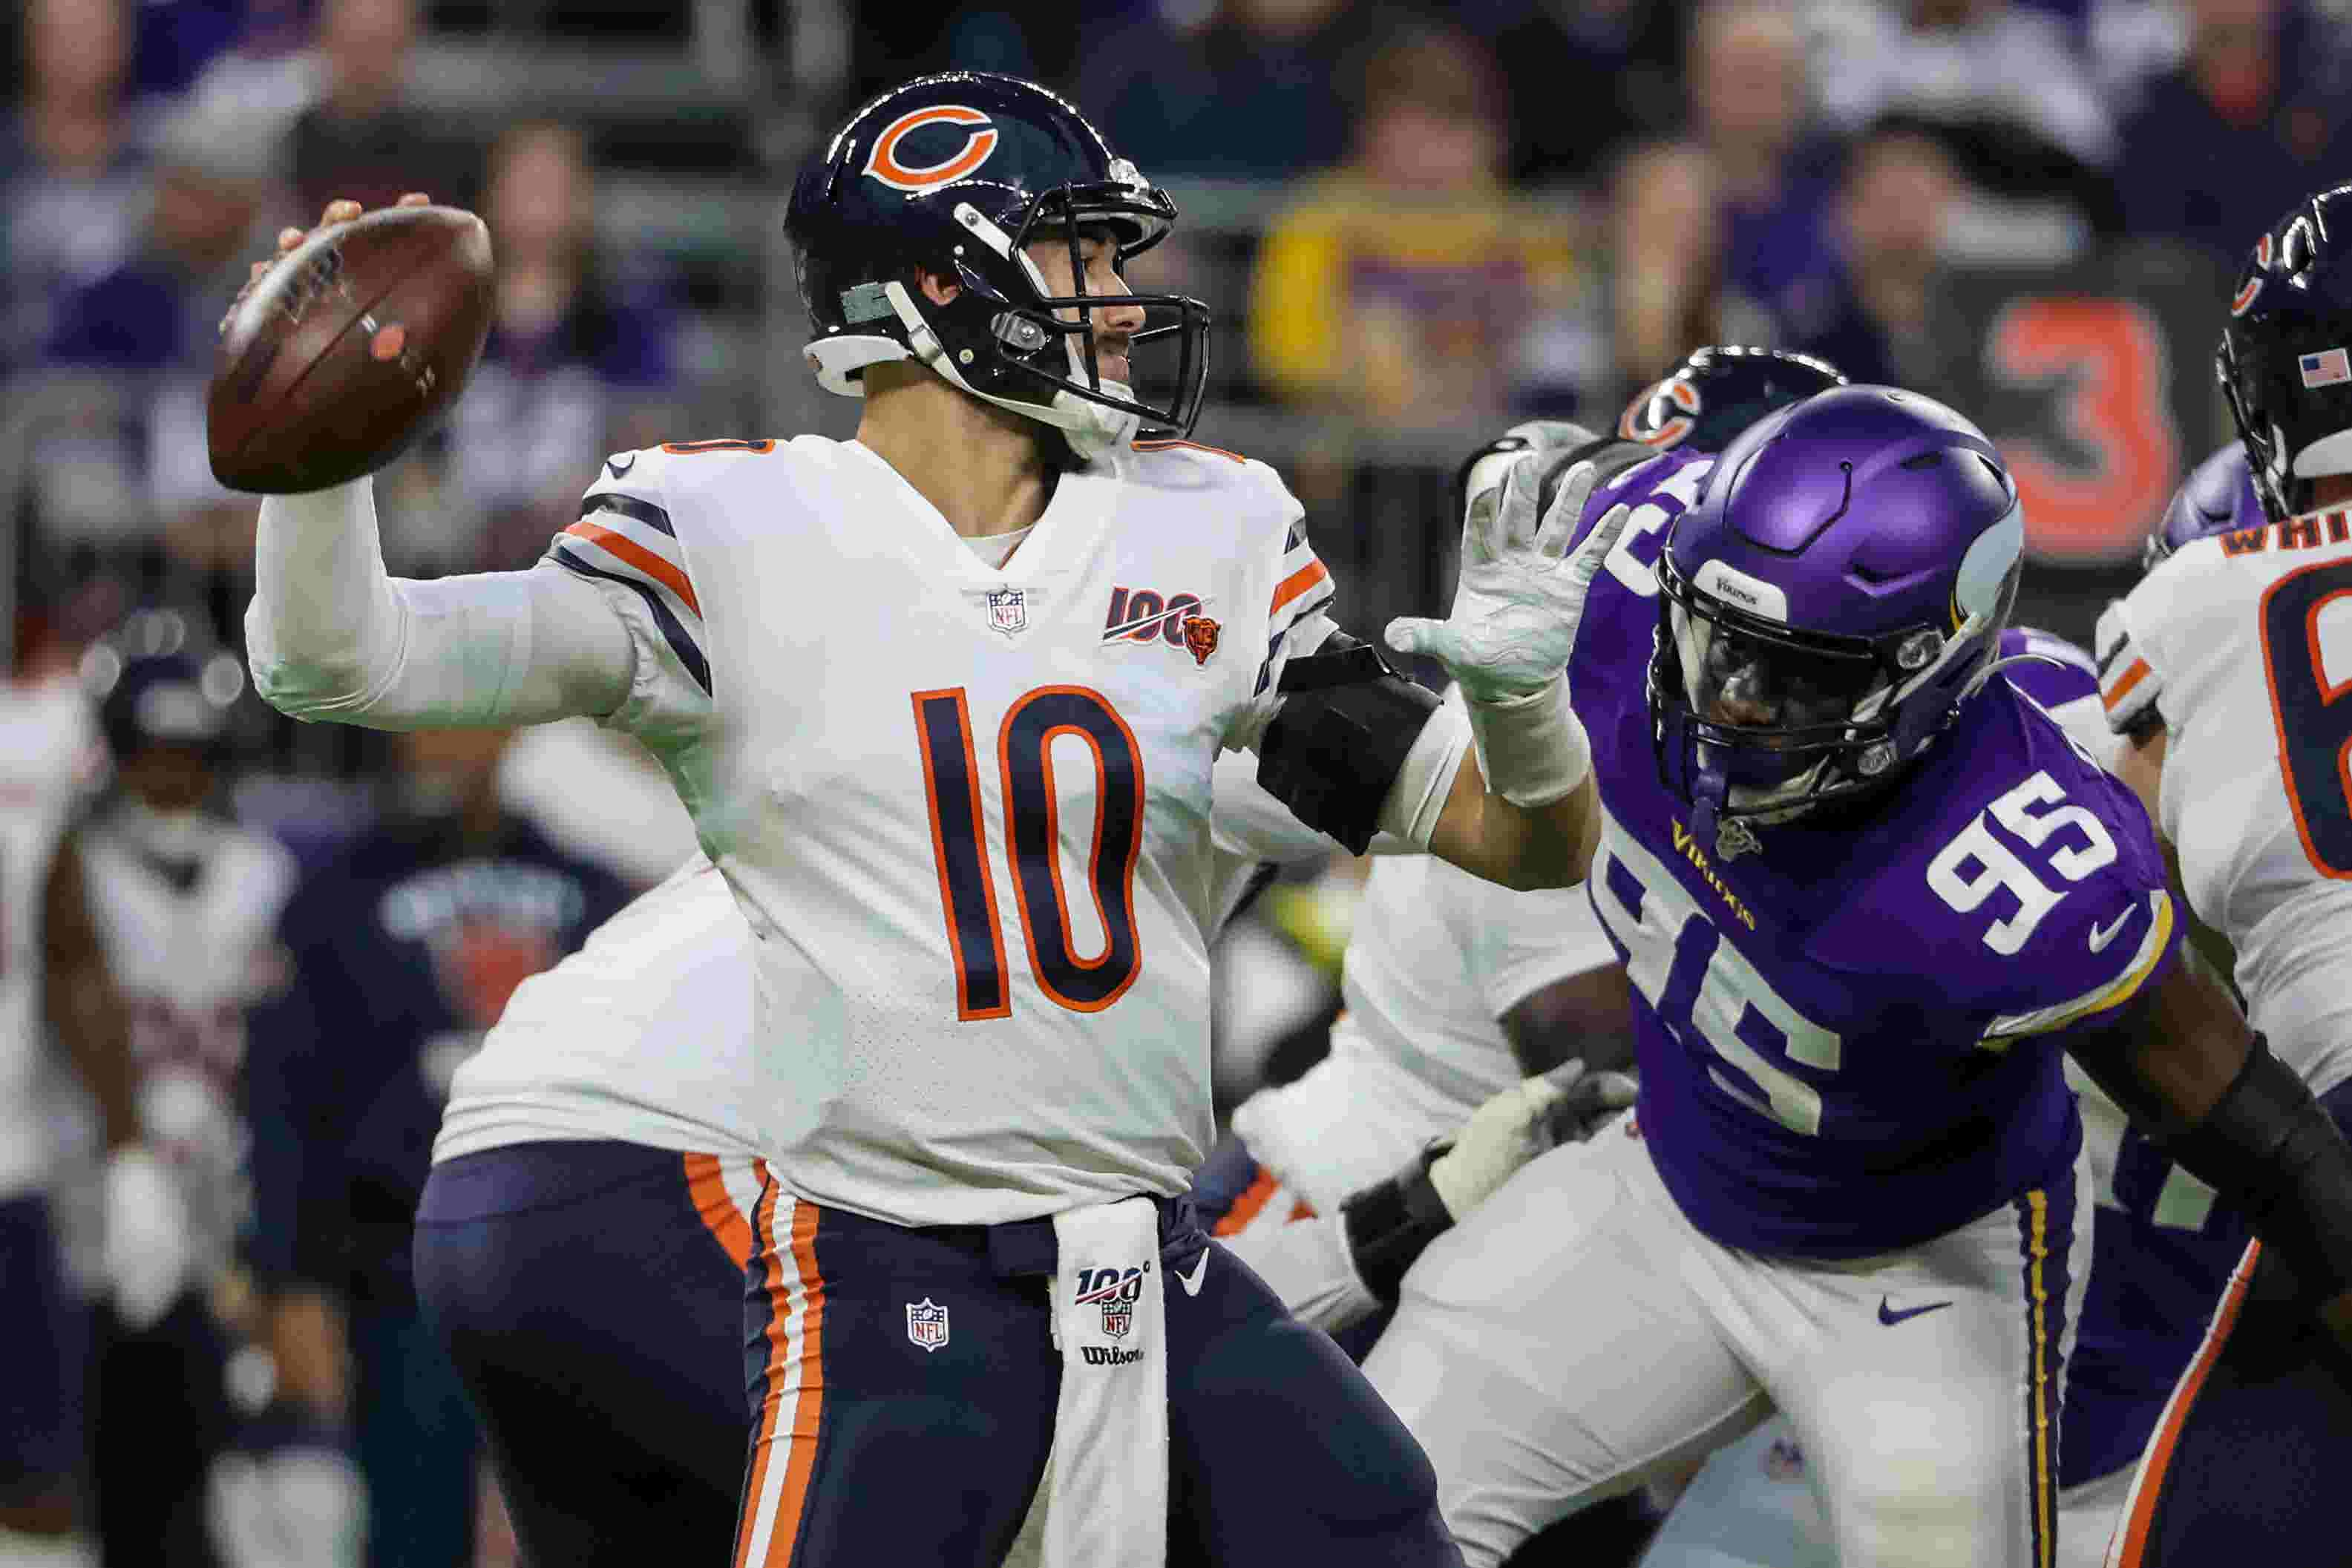 Early NFL game headlines: Bears comeback to beat the Lions on the road